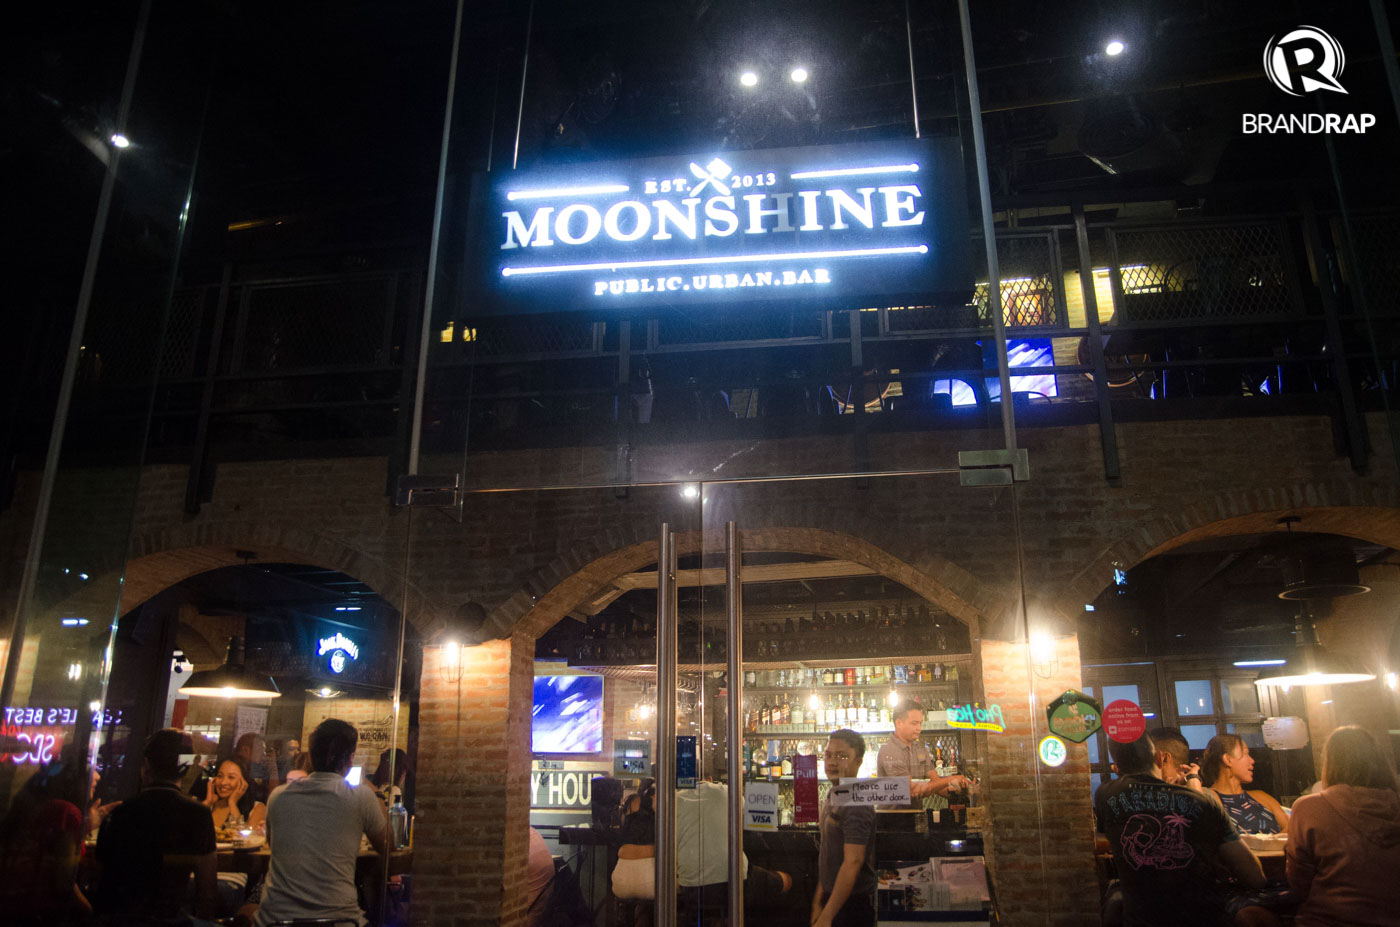 RUSTIC. Moonshineu2019s rustic interior is inspired by the Prohibition Era in the 1920s. Photo by Pauee Cadaing/Rappler